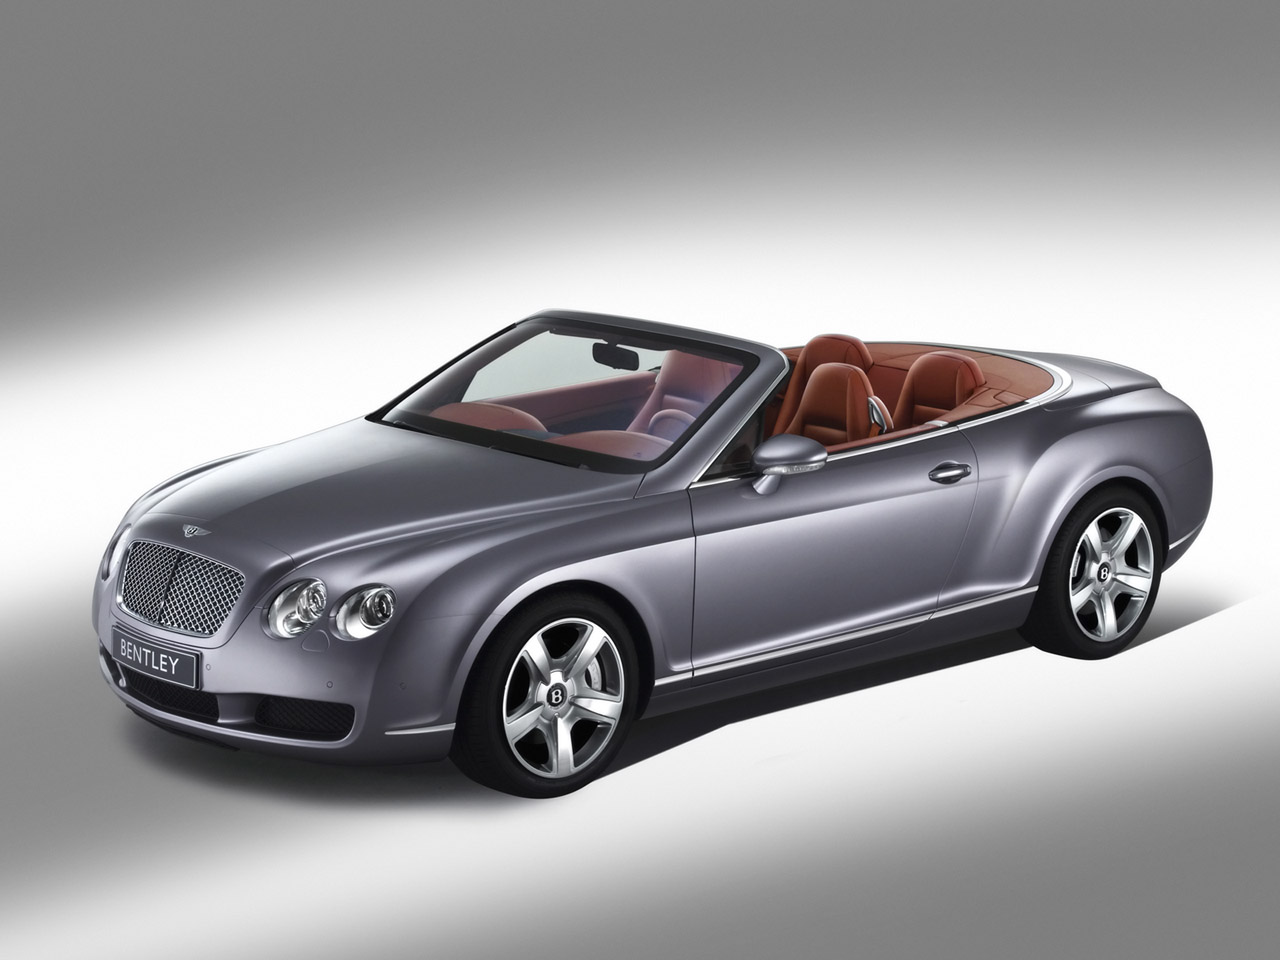 Bentley Continental GTC 2013 High Resolution Wallpaper Free Wallpaper